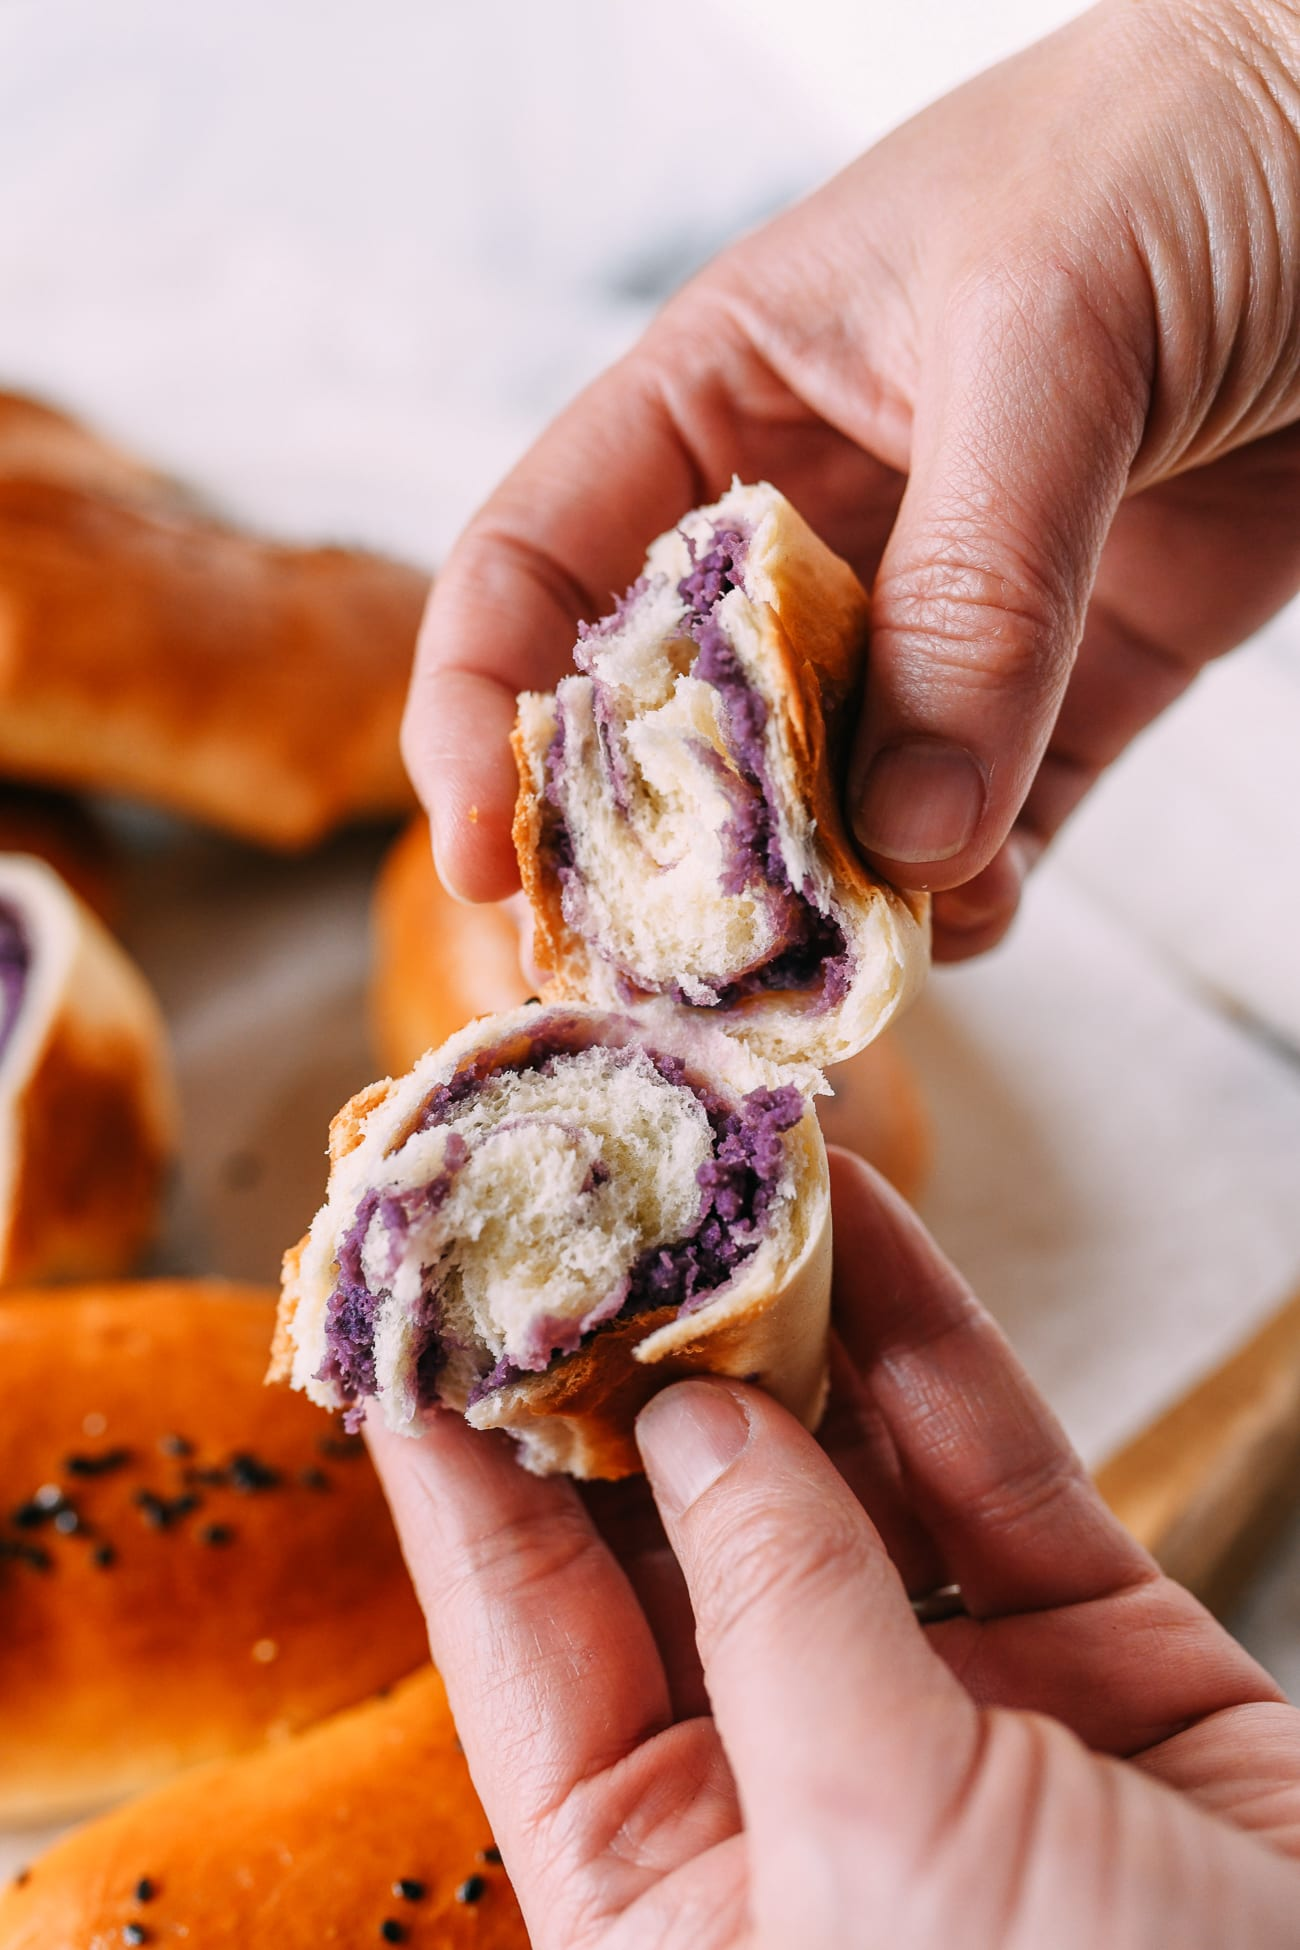 Ripping open an ube bun with two hands